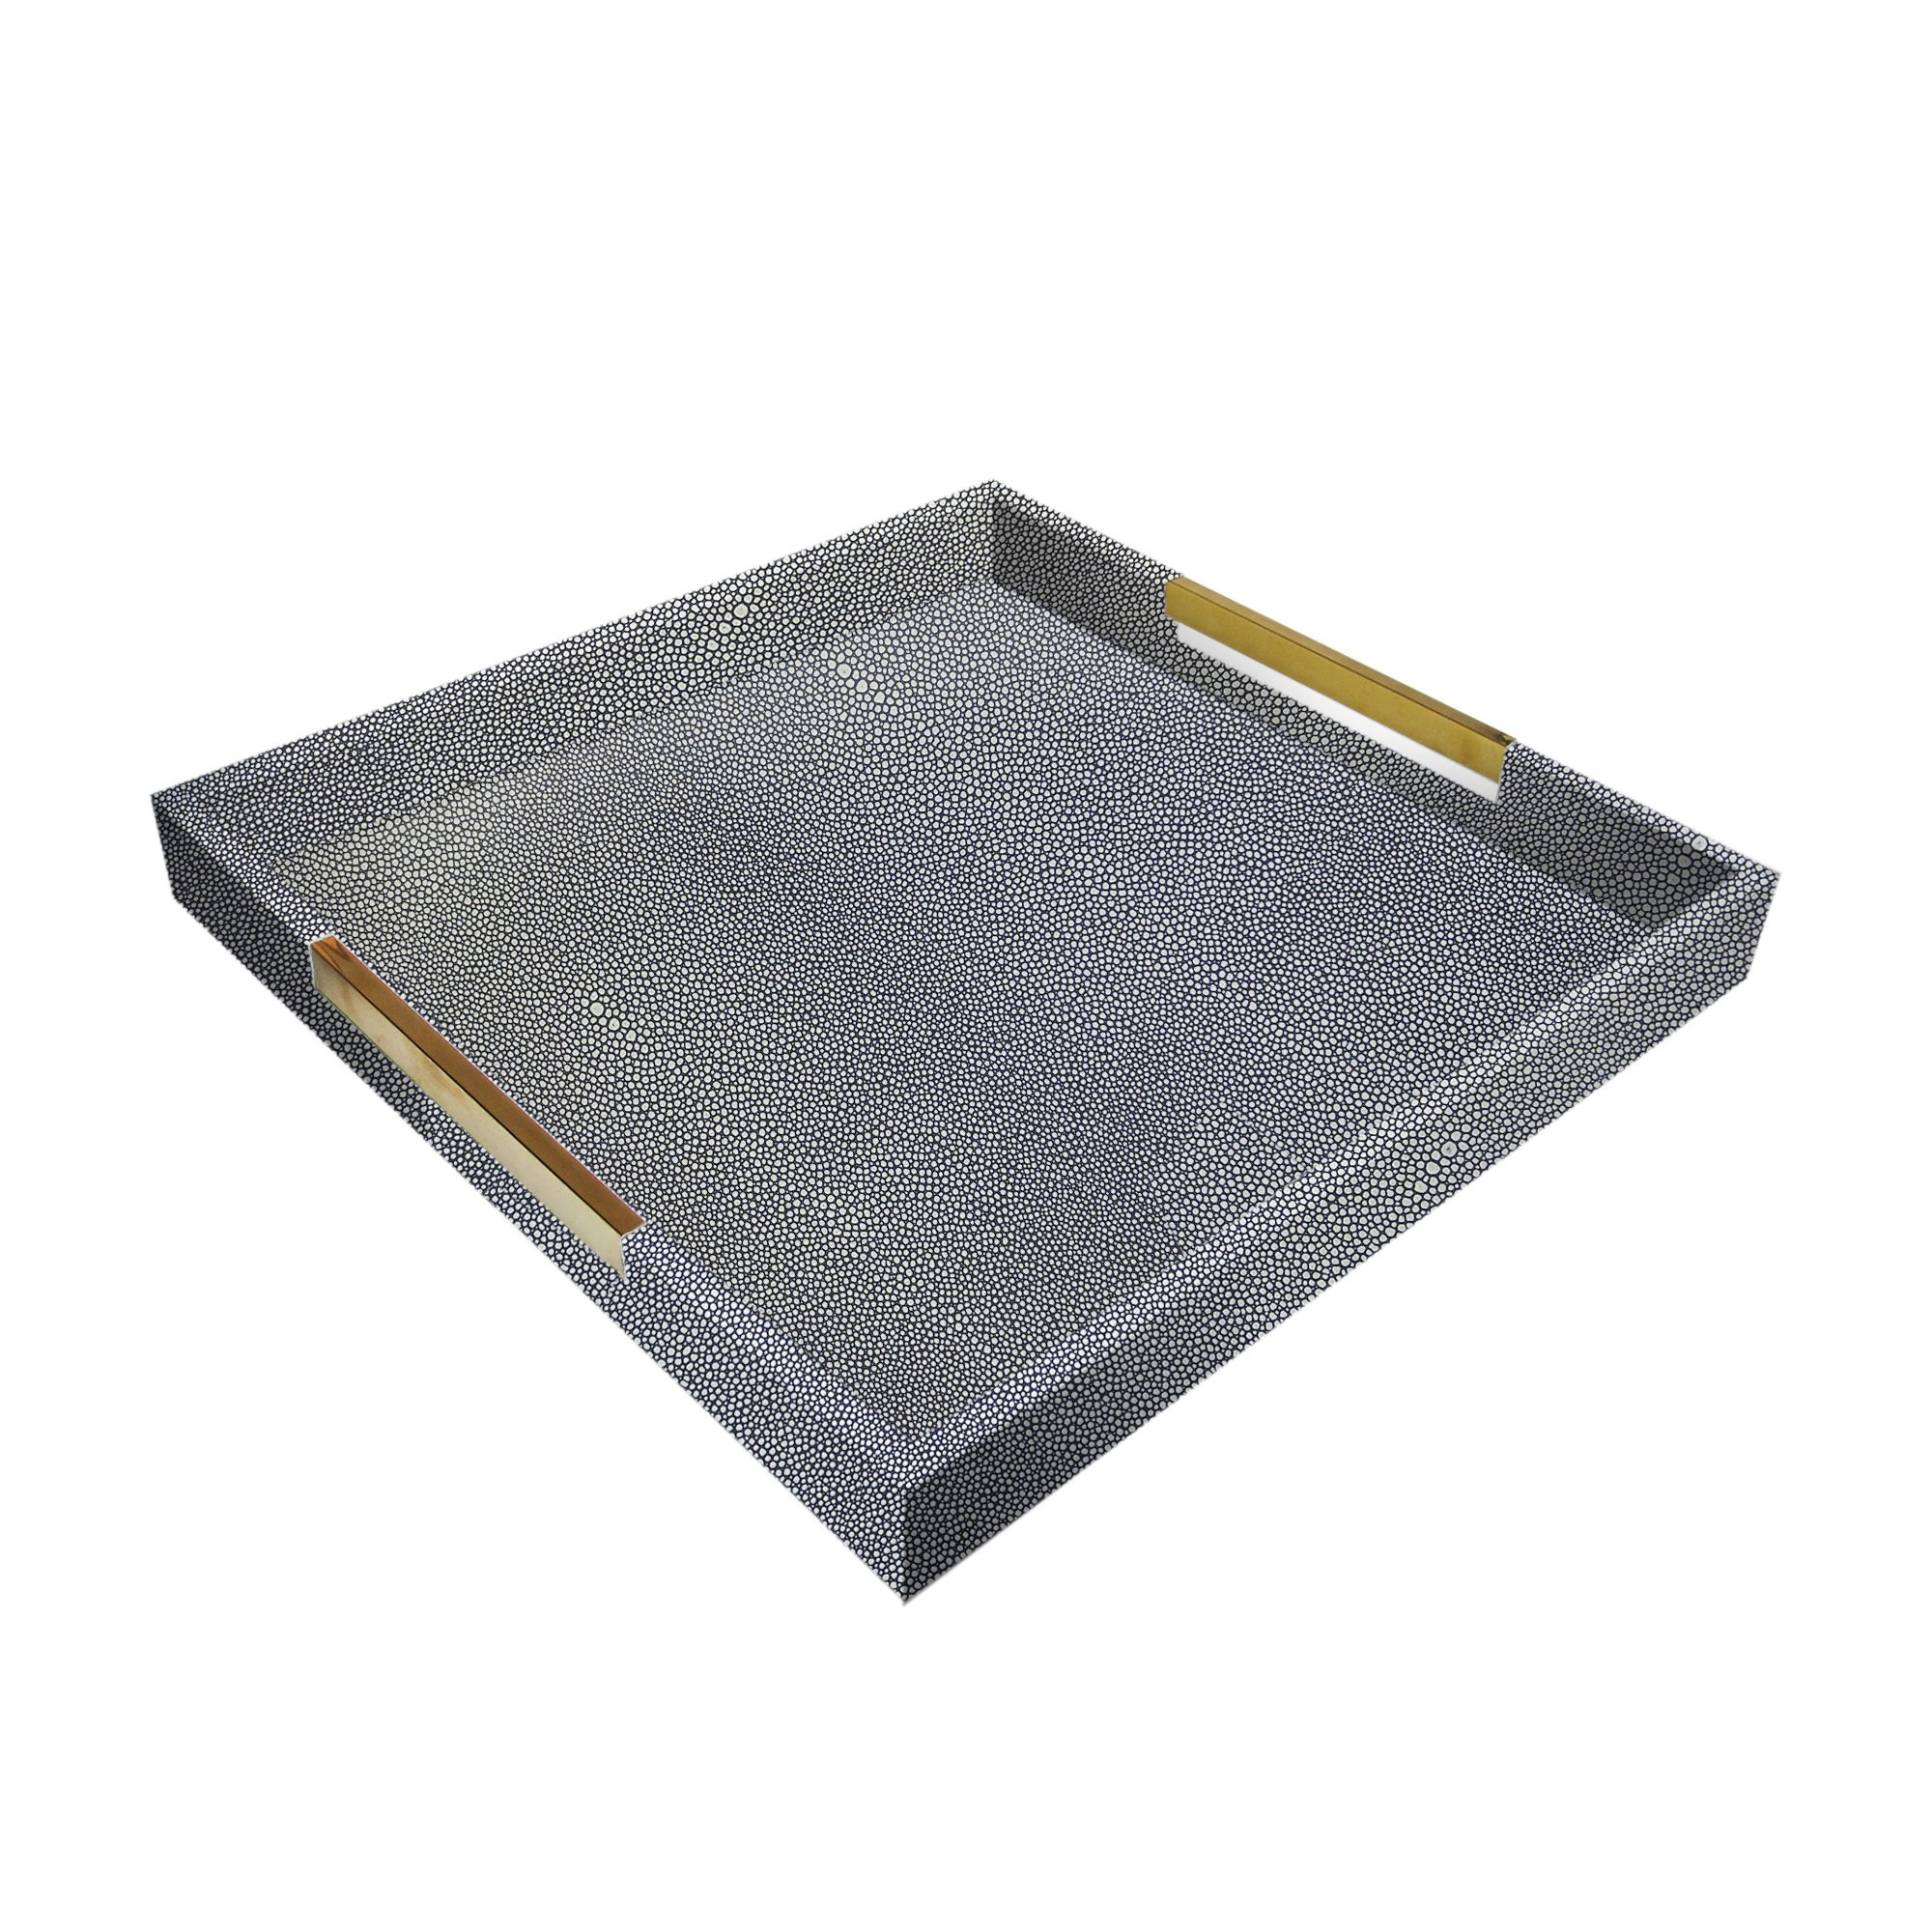 American Atelier 1630000 White & Gray Square Tray with Gold Handles